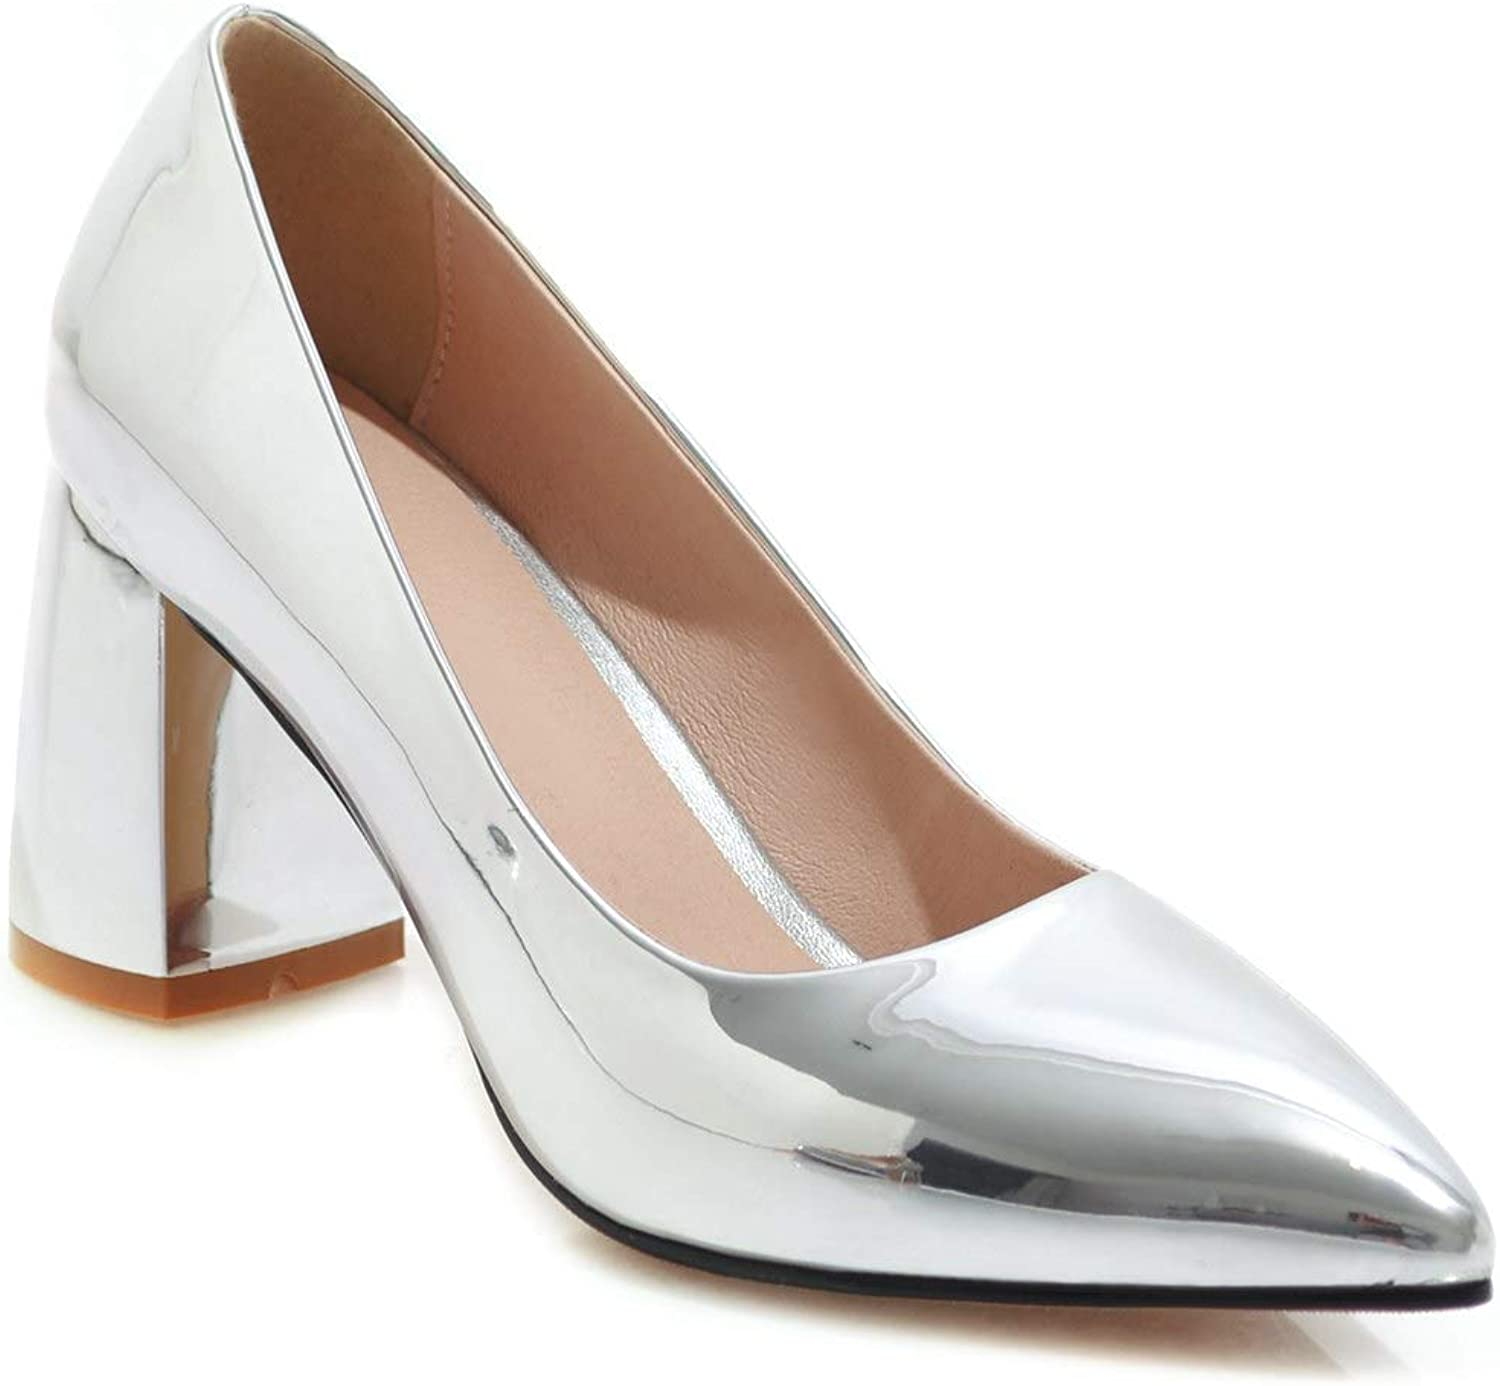 JIEEME Women's Fashion Square Heels Pointed Toe Silver God High Heels Casual Pumps